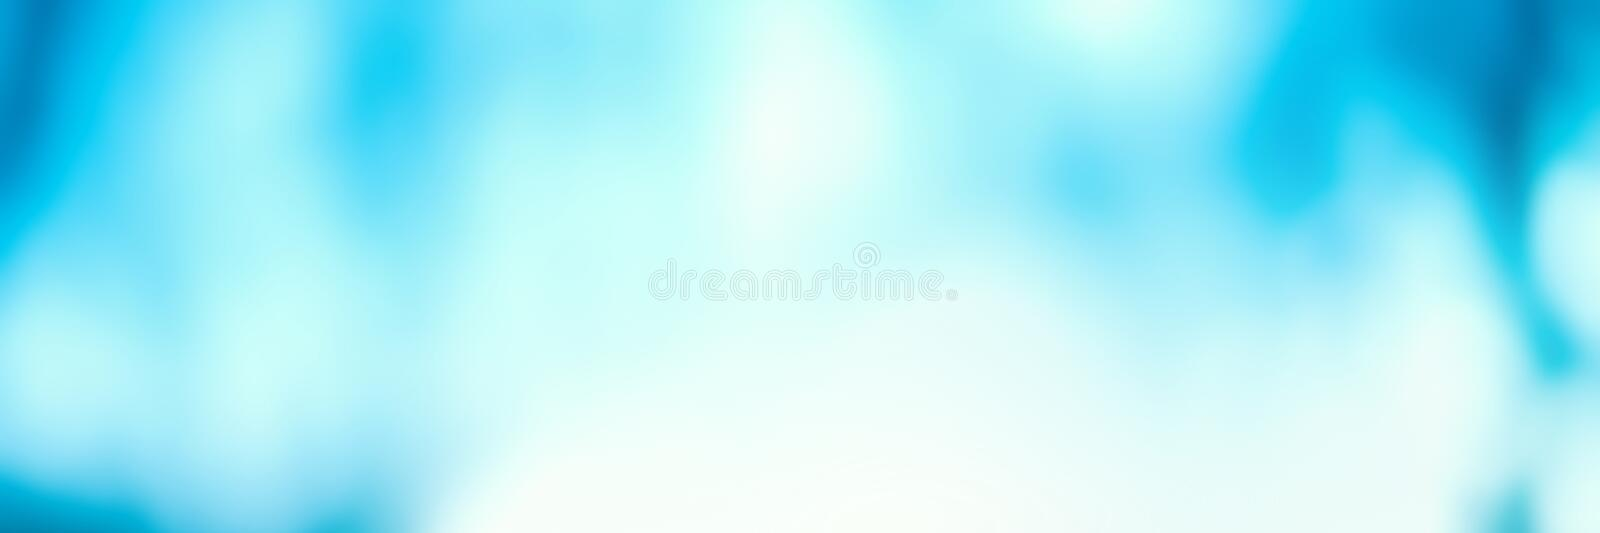 Abstract Blurred blue city lights background scene with soft bo royalty free stock images